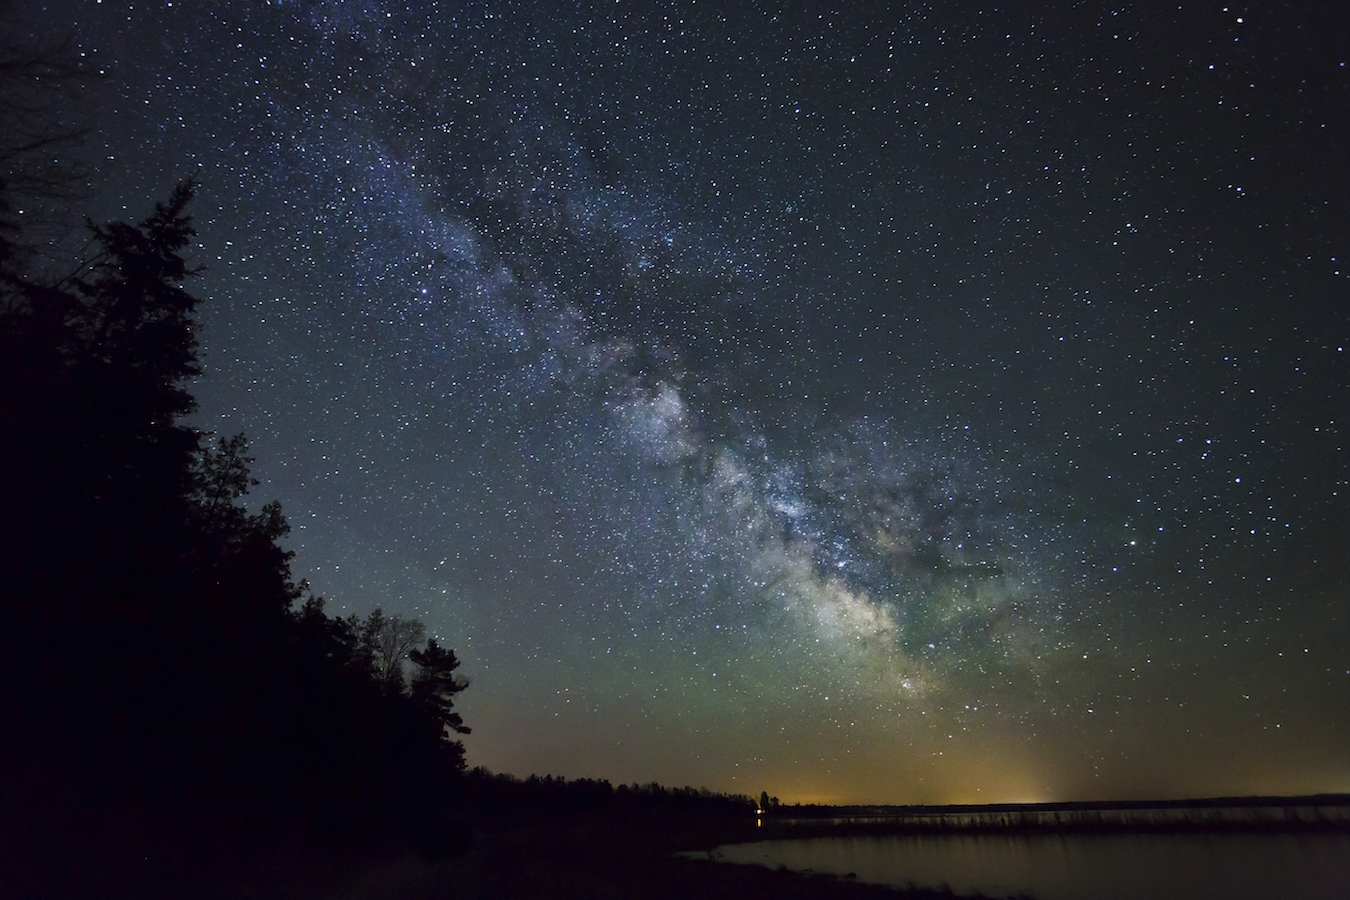 Headlands Internation Dark Sky Park